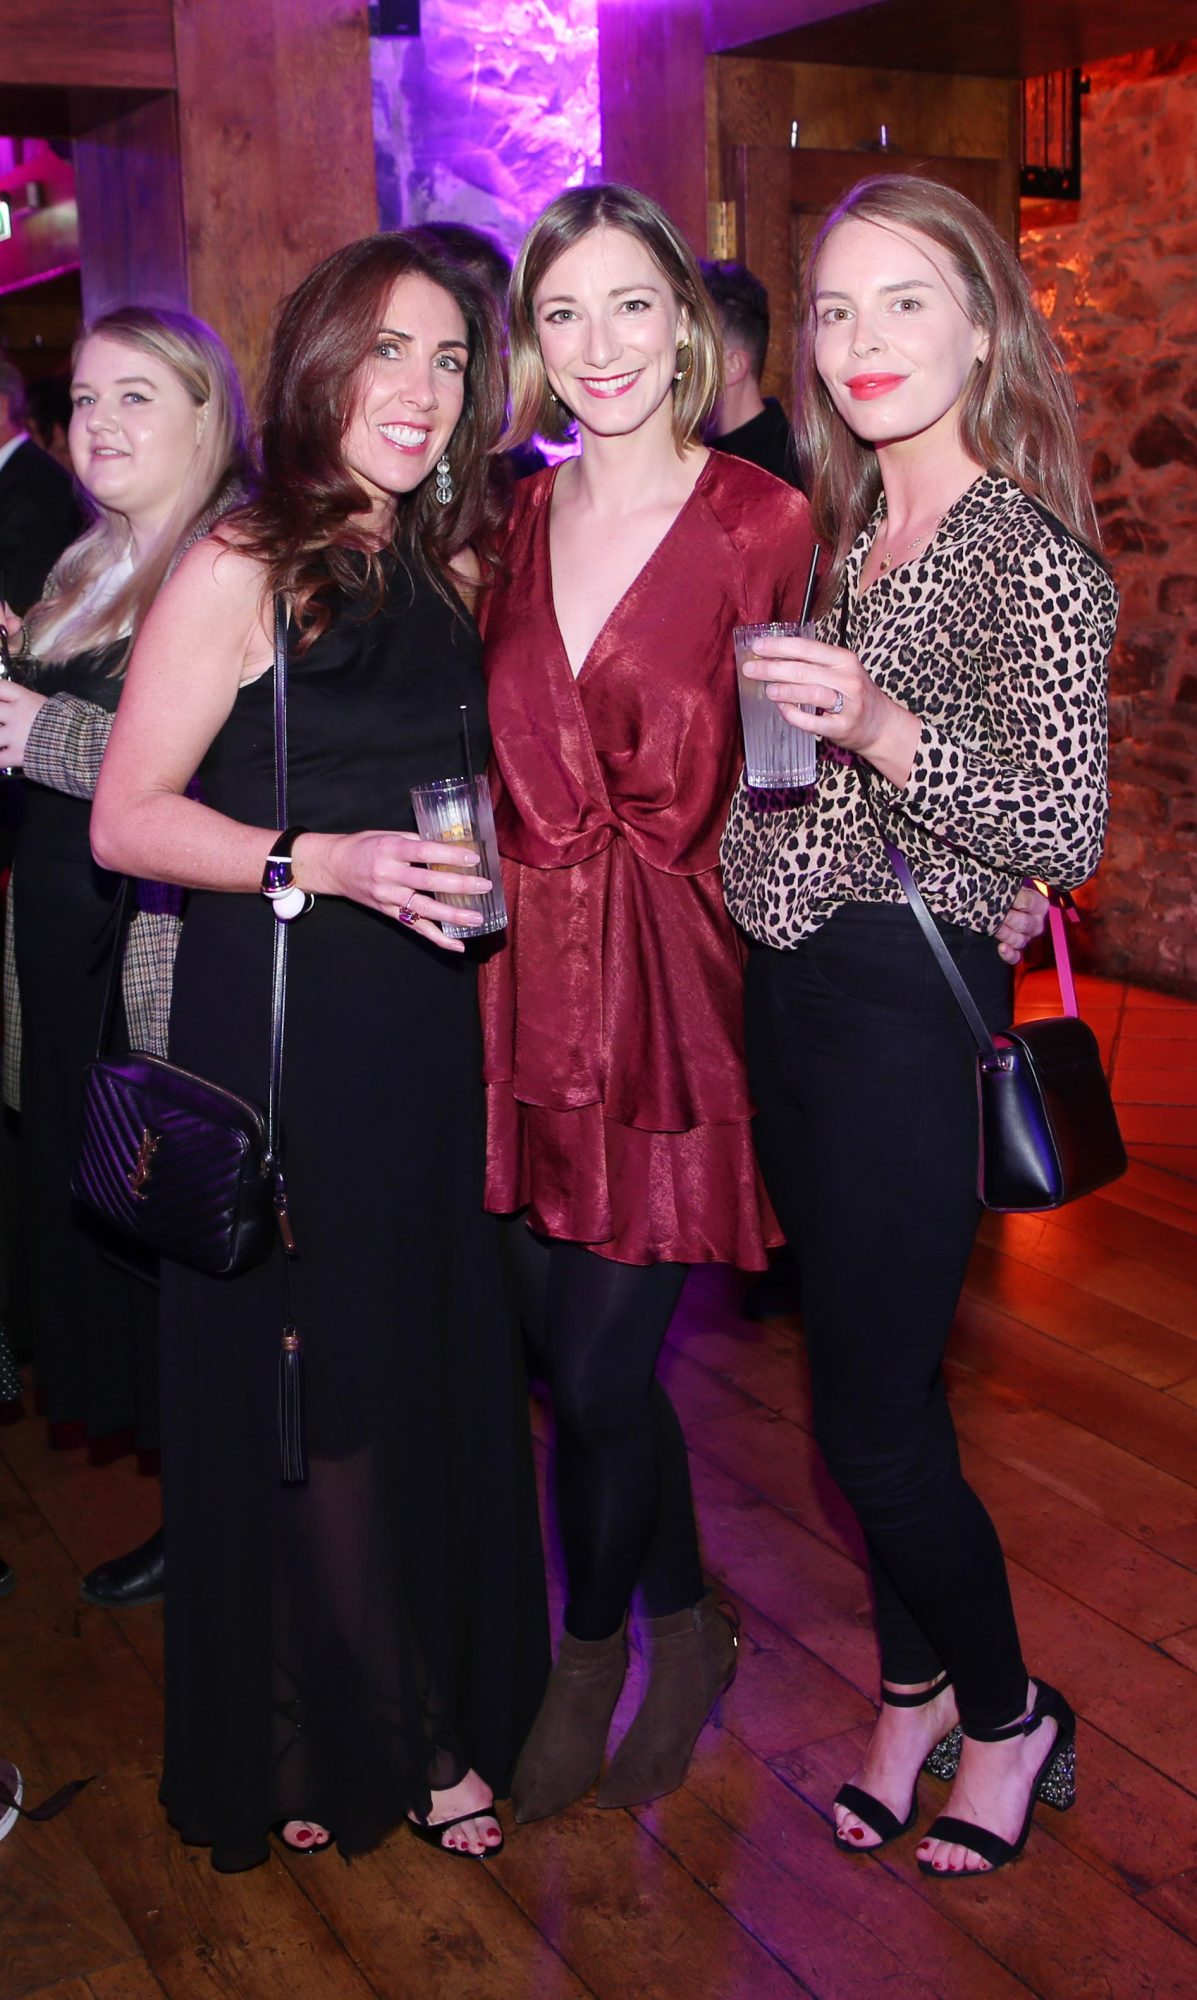 Nicola McBrinn, Liz McBrinn and Ava Devlin pictured at the exclusive global launch of Wilde Irish Gin at The Cellar Bar last night. Photograph: Leon Farrell / Photocall Ireland